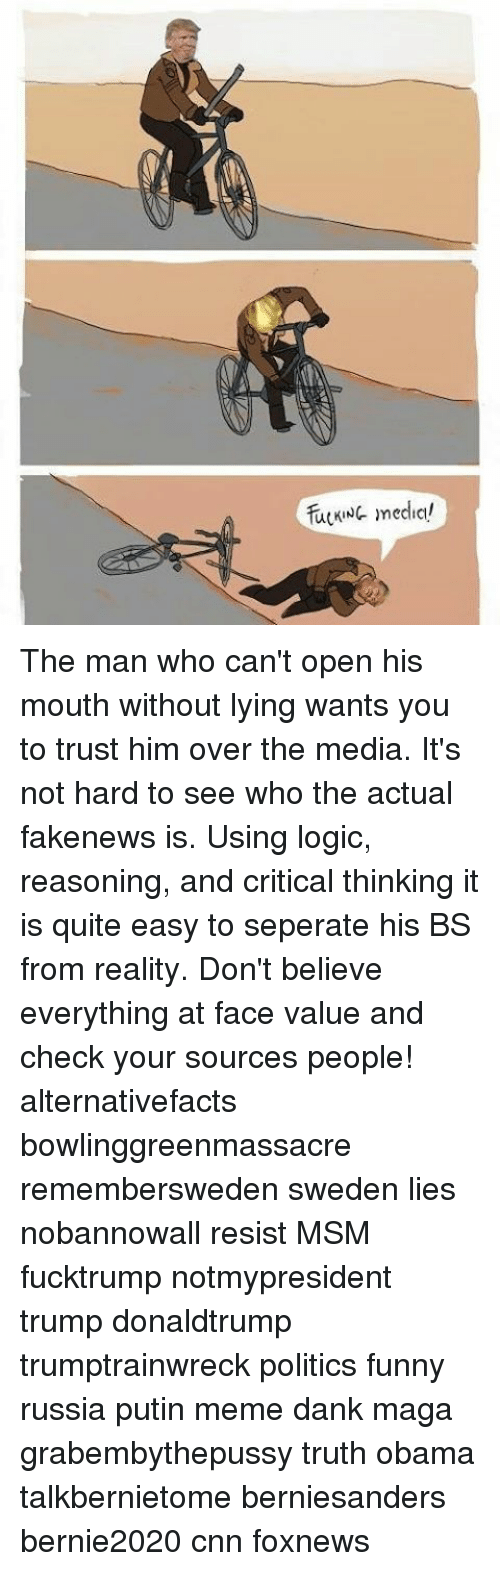 Putin Meme: fuKwC medici, The man who can't open his mouth without lying wants you to trust him over the media. It's not hard to see who the actual fakenews is. Using logic, reasoning, and critical thinking it is quite easy to seperate his BS from reality. Don't believe everything at face value and check your sources people! alternativefacts bowlinggreenmassacre remembersweden sweden lies nobannowall resist MSM fucktrump notmypresident trump donaldtrump trumptrainwreck politics funny russia putin meme dank maga grabembythepussy truth obama talkbernietome berniesanders bernie2020 cnn foxnews